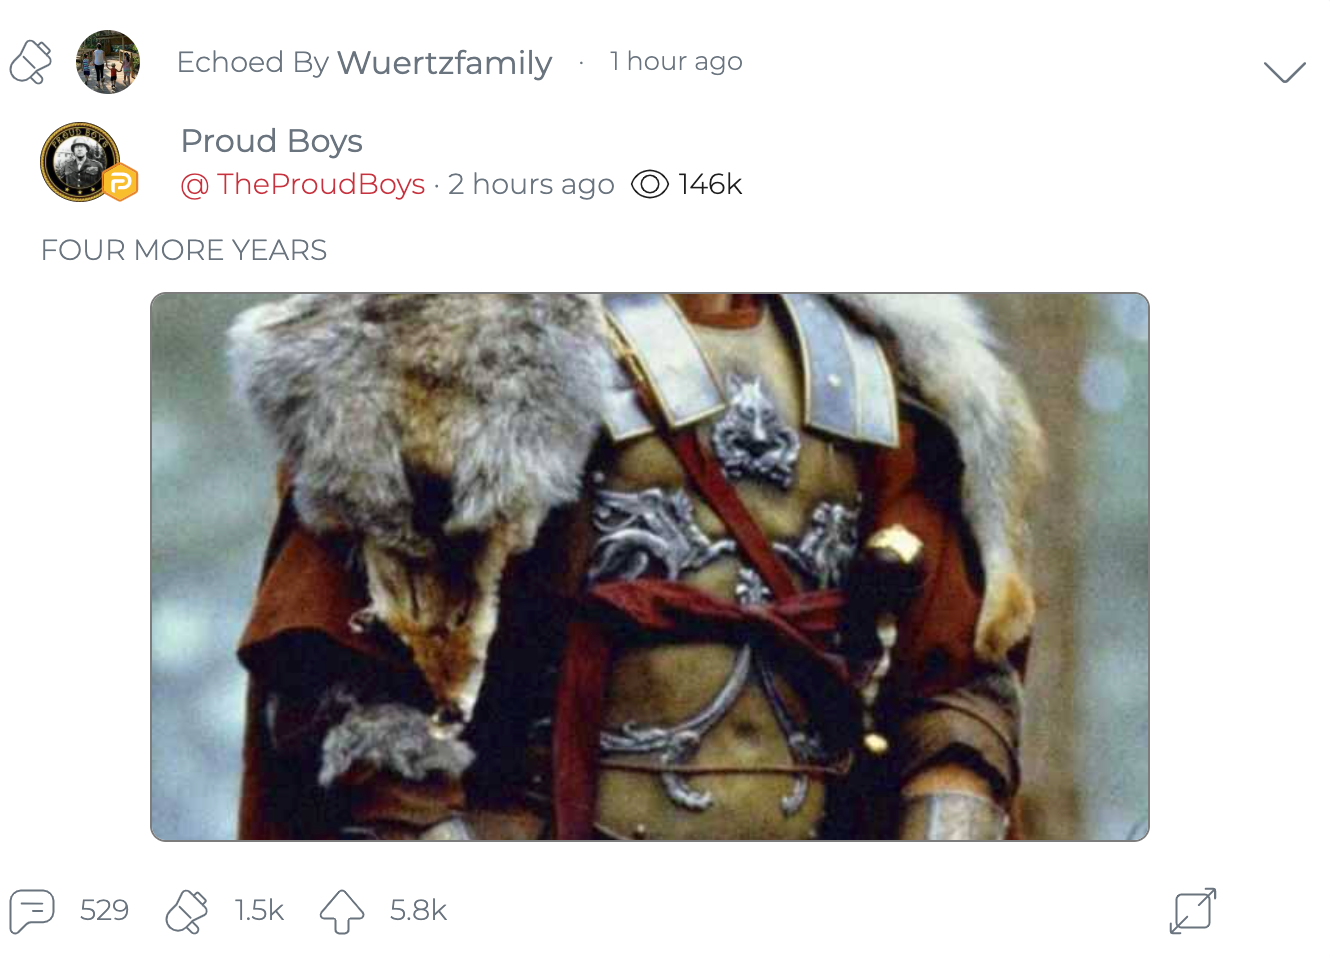 @WuertzFamily shares a Donald Trump meme posted by the official Proud Boys account on Parler. You can see the full meme on Imgur. (Image: Parler screenshot.)